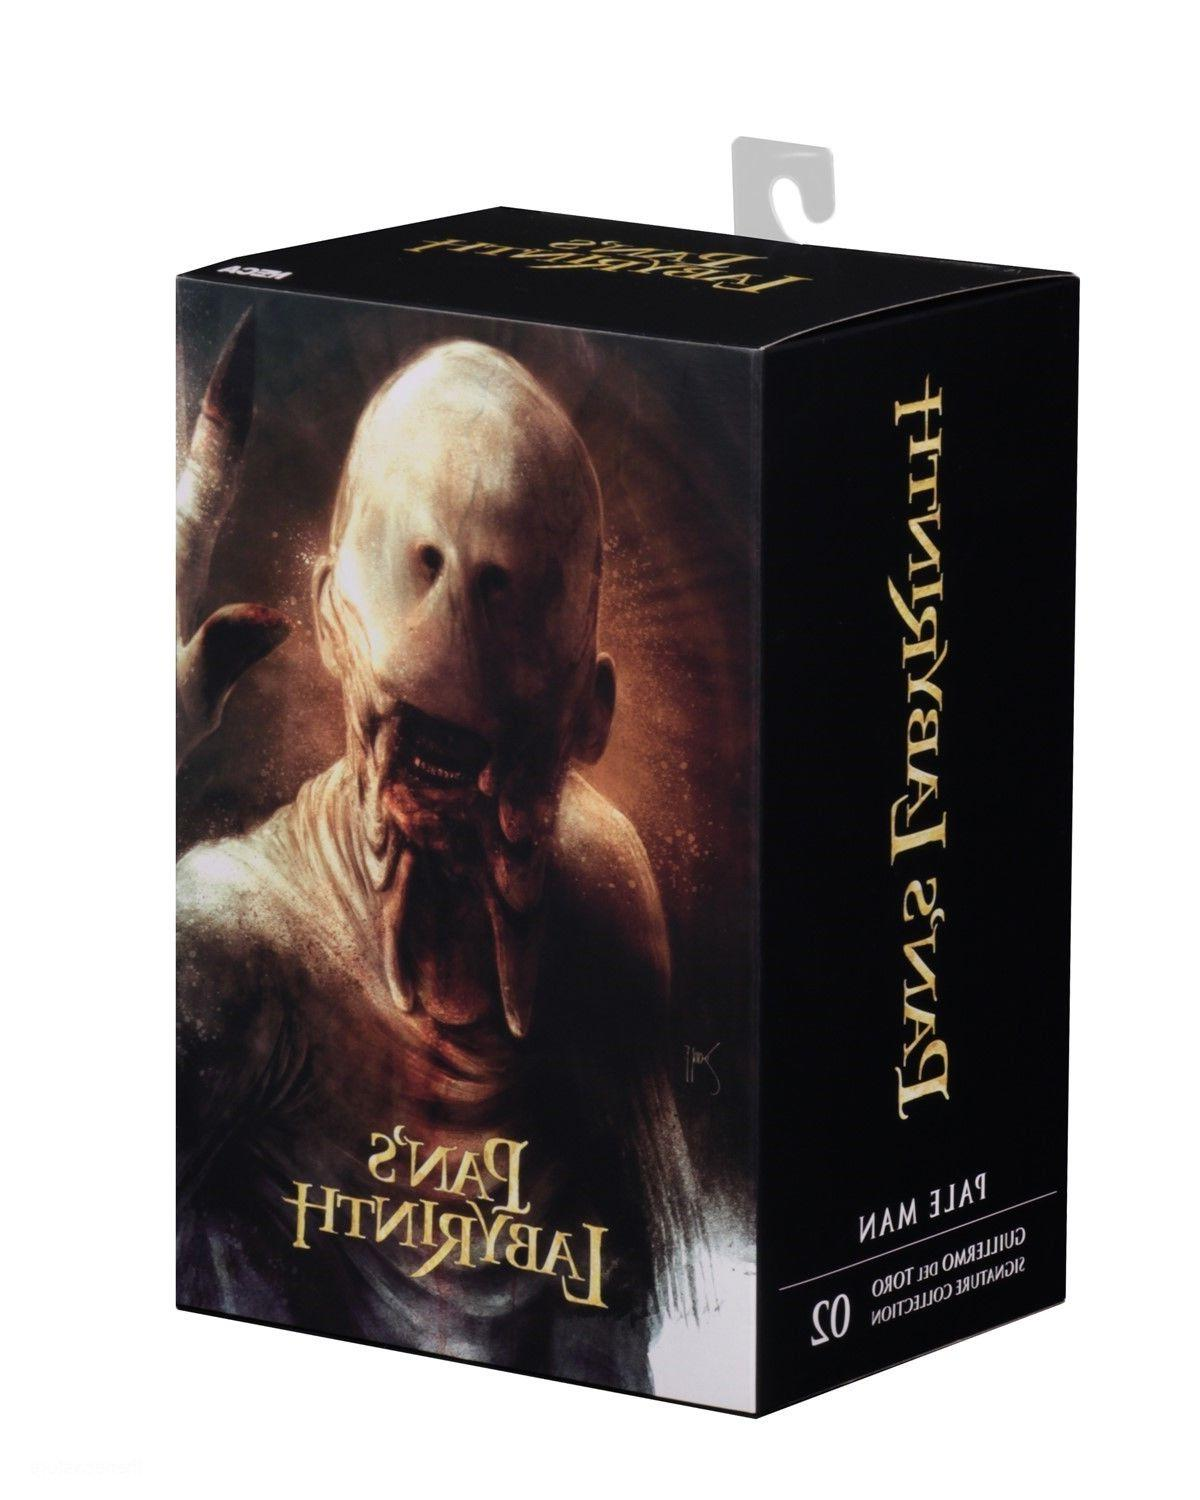 Guillermo Pan's Labyrinth Pale Man -